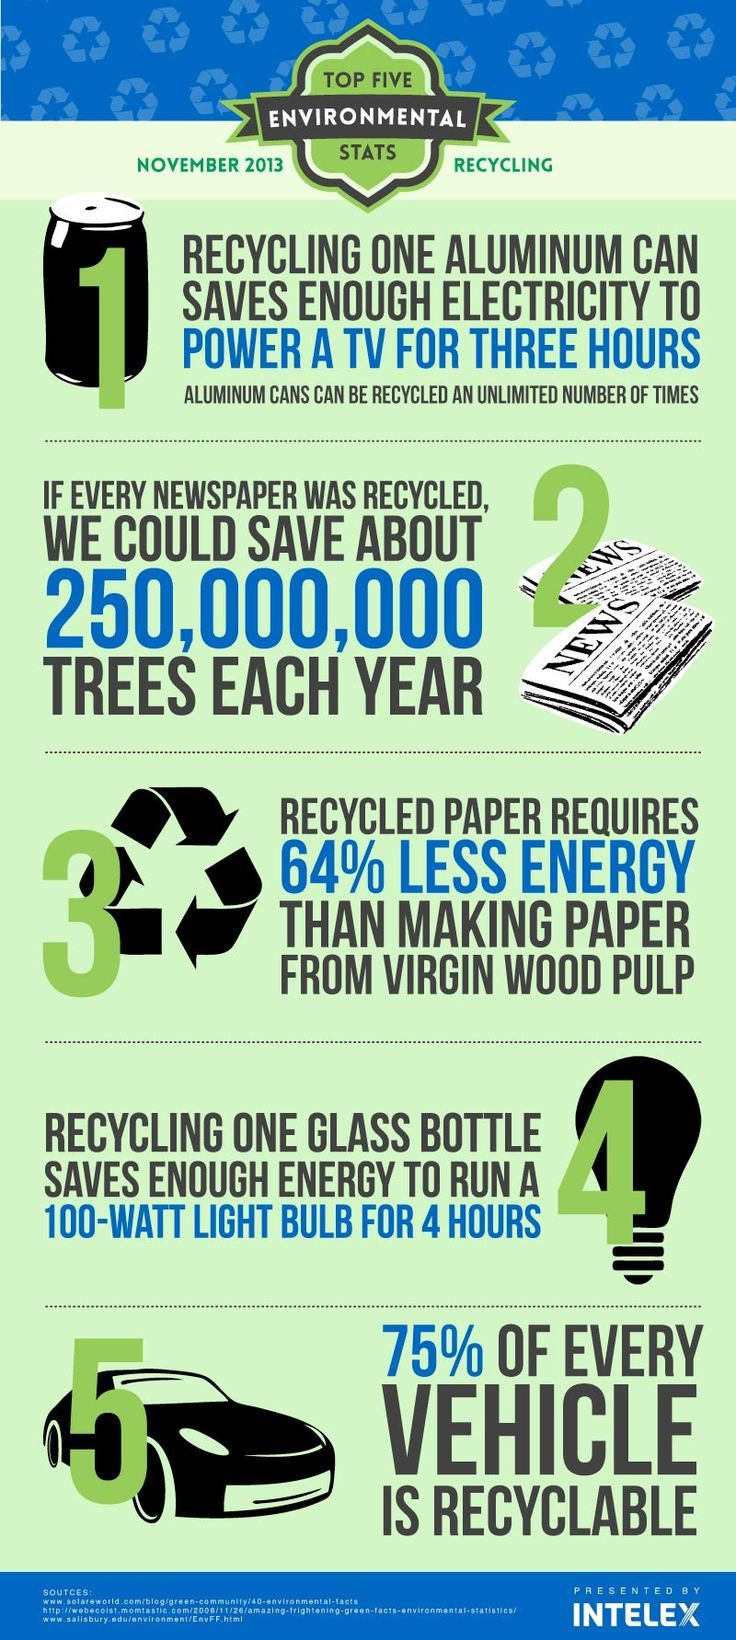 Five important facts about recycling and the environment: http://blog.intelex